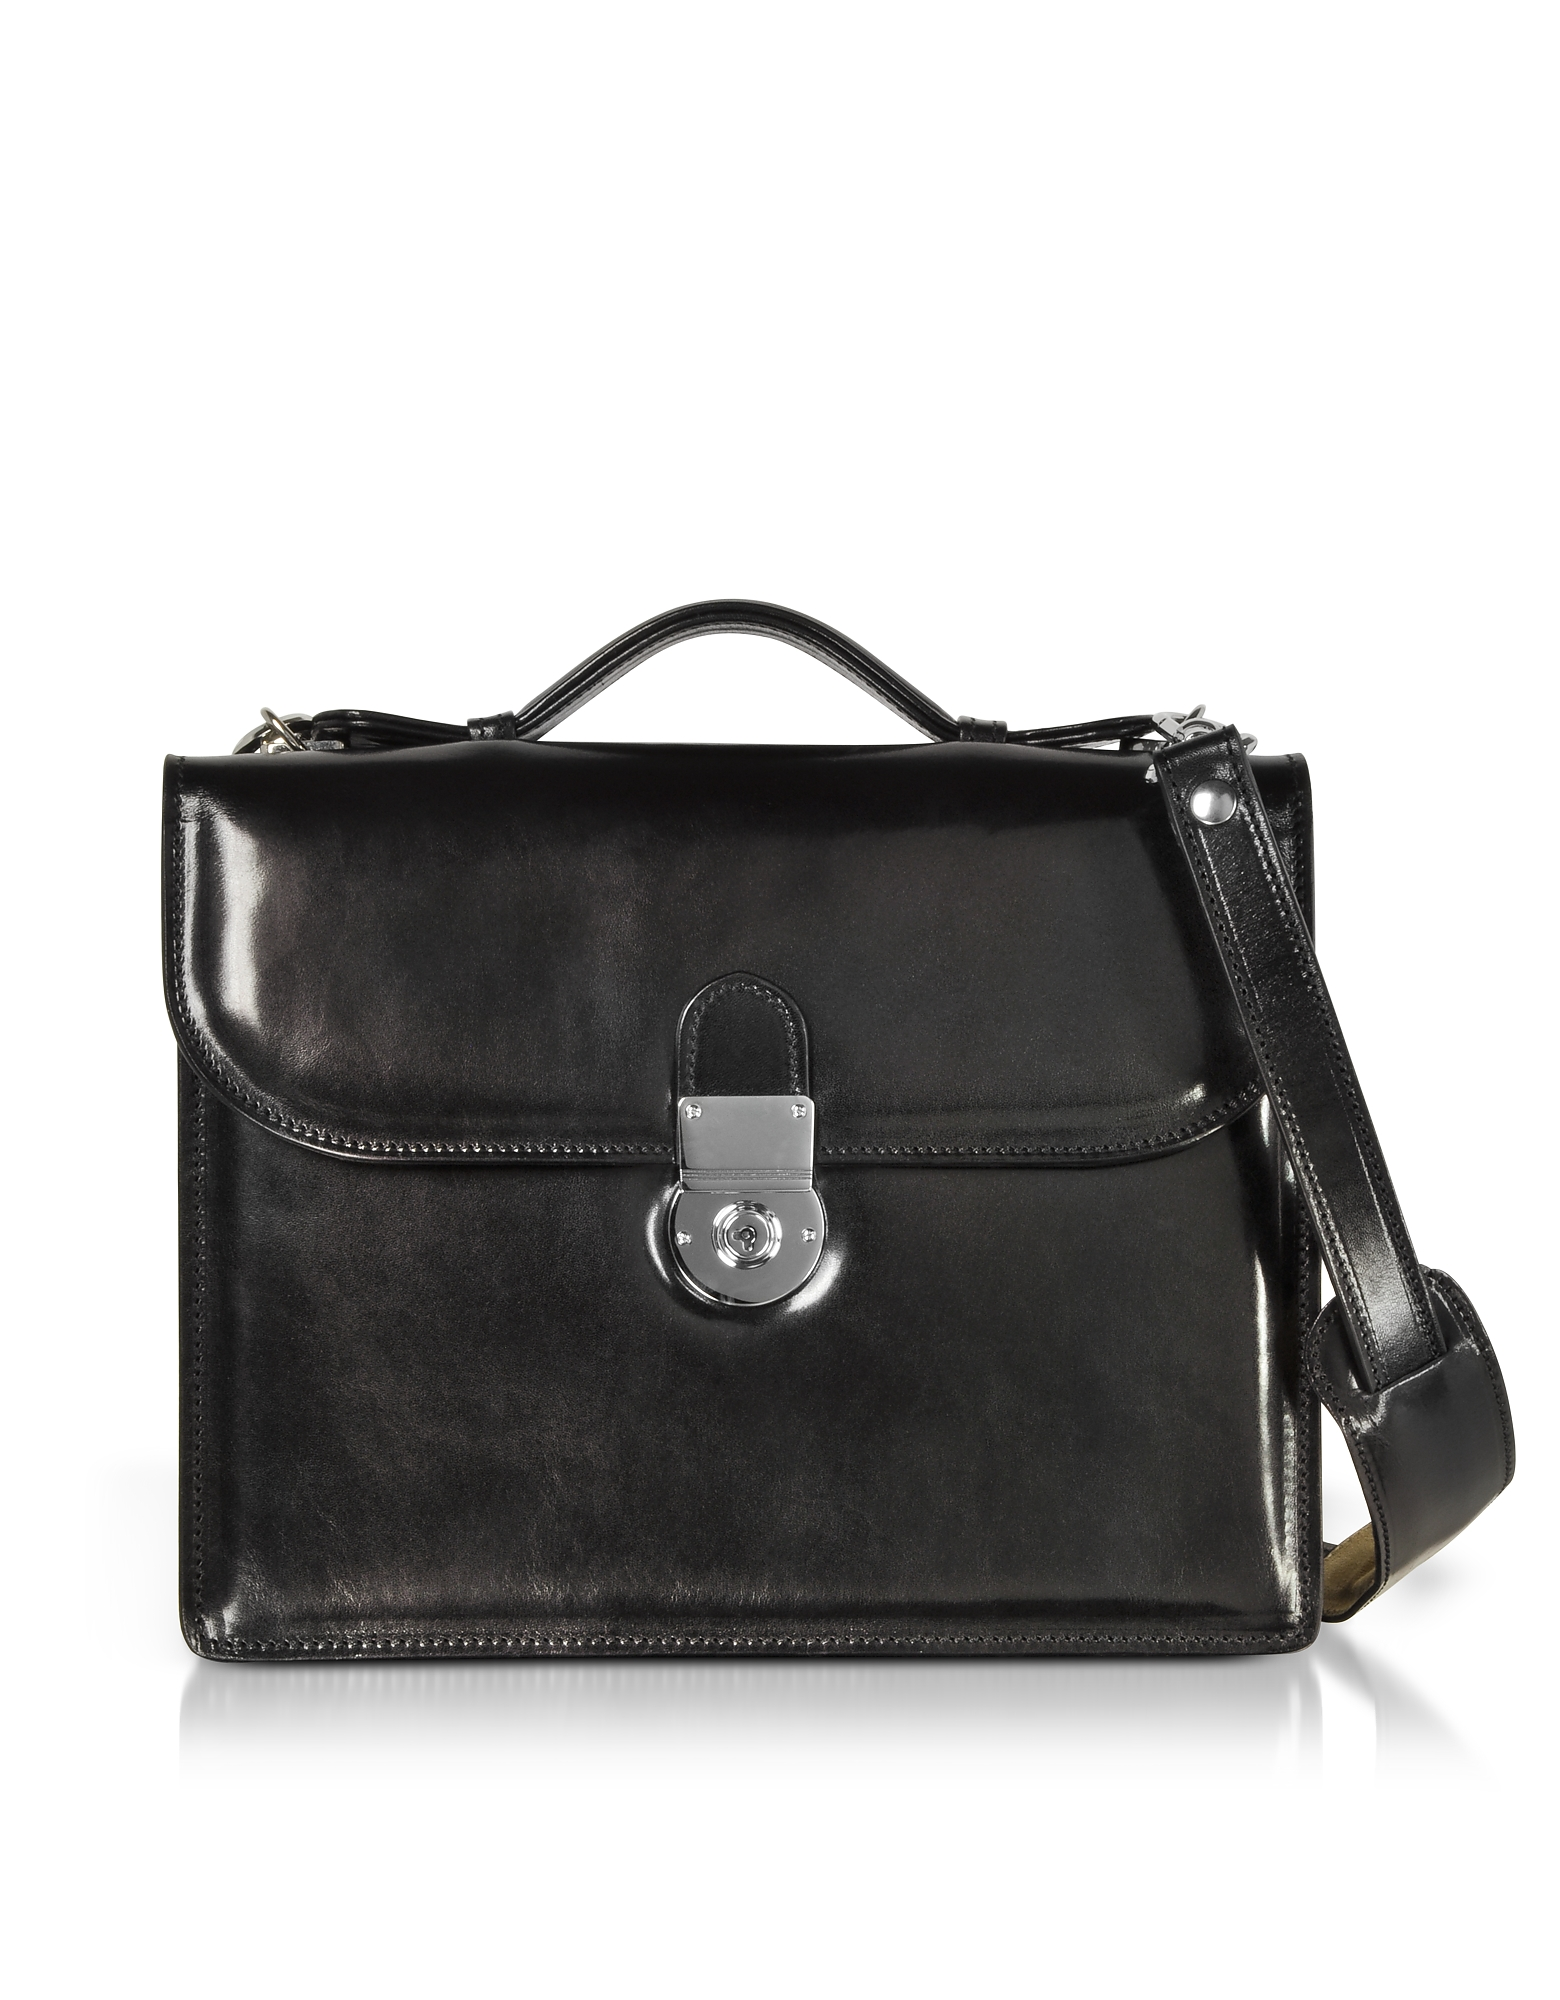 Image of L.A.P.A. Designer Briefcases, Classic Black Leather Briefcase